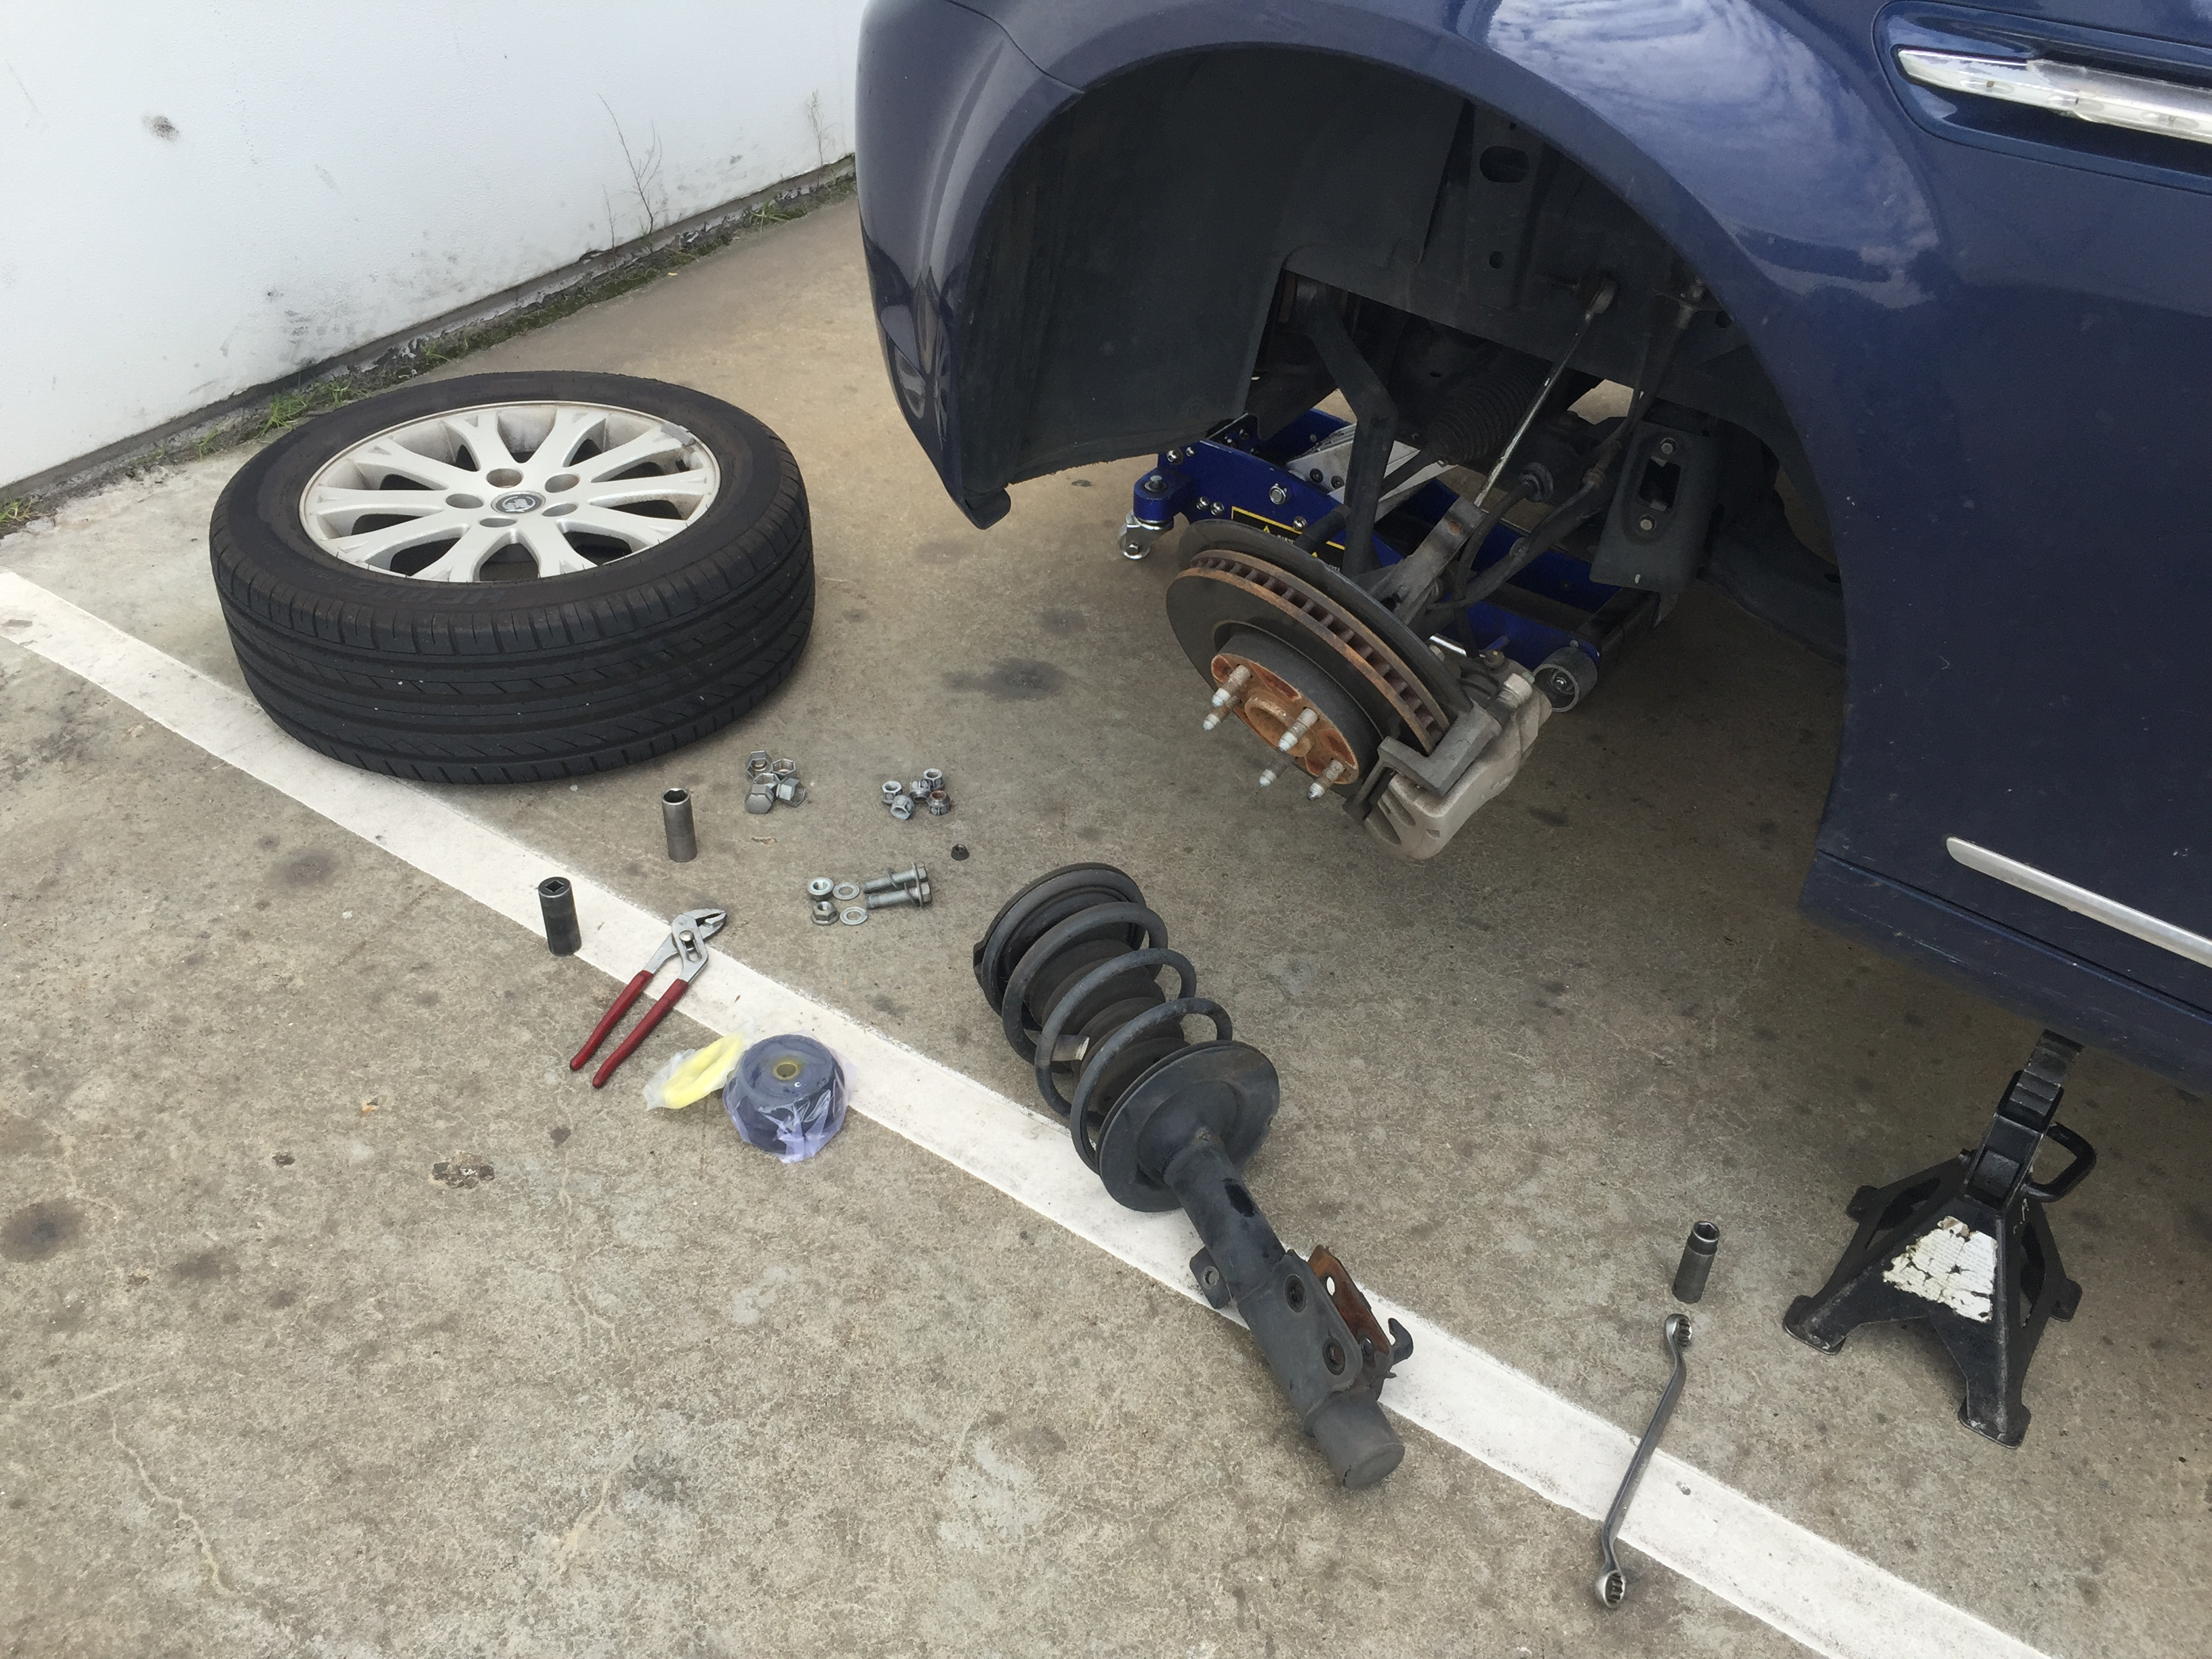 MOBILE SUSPENSION REPLACEMENT